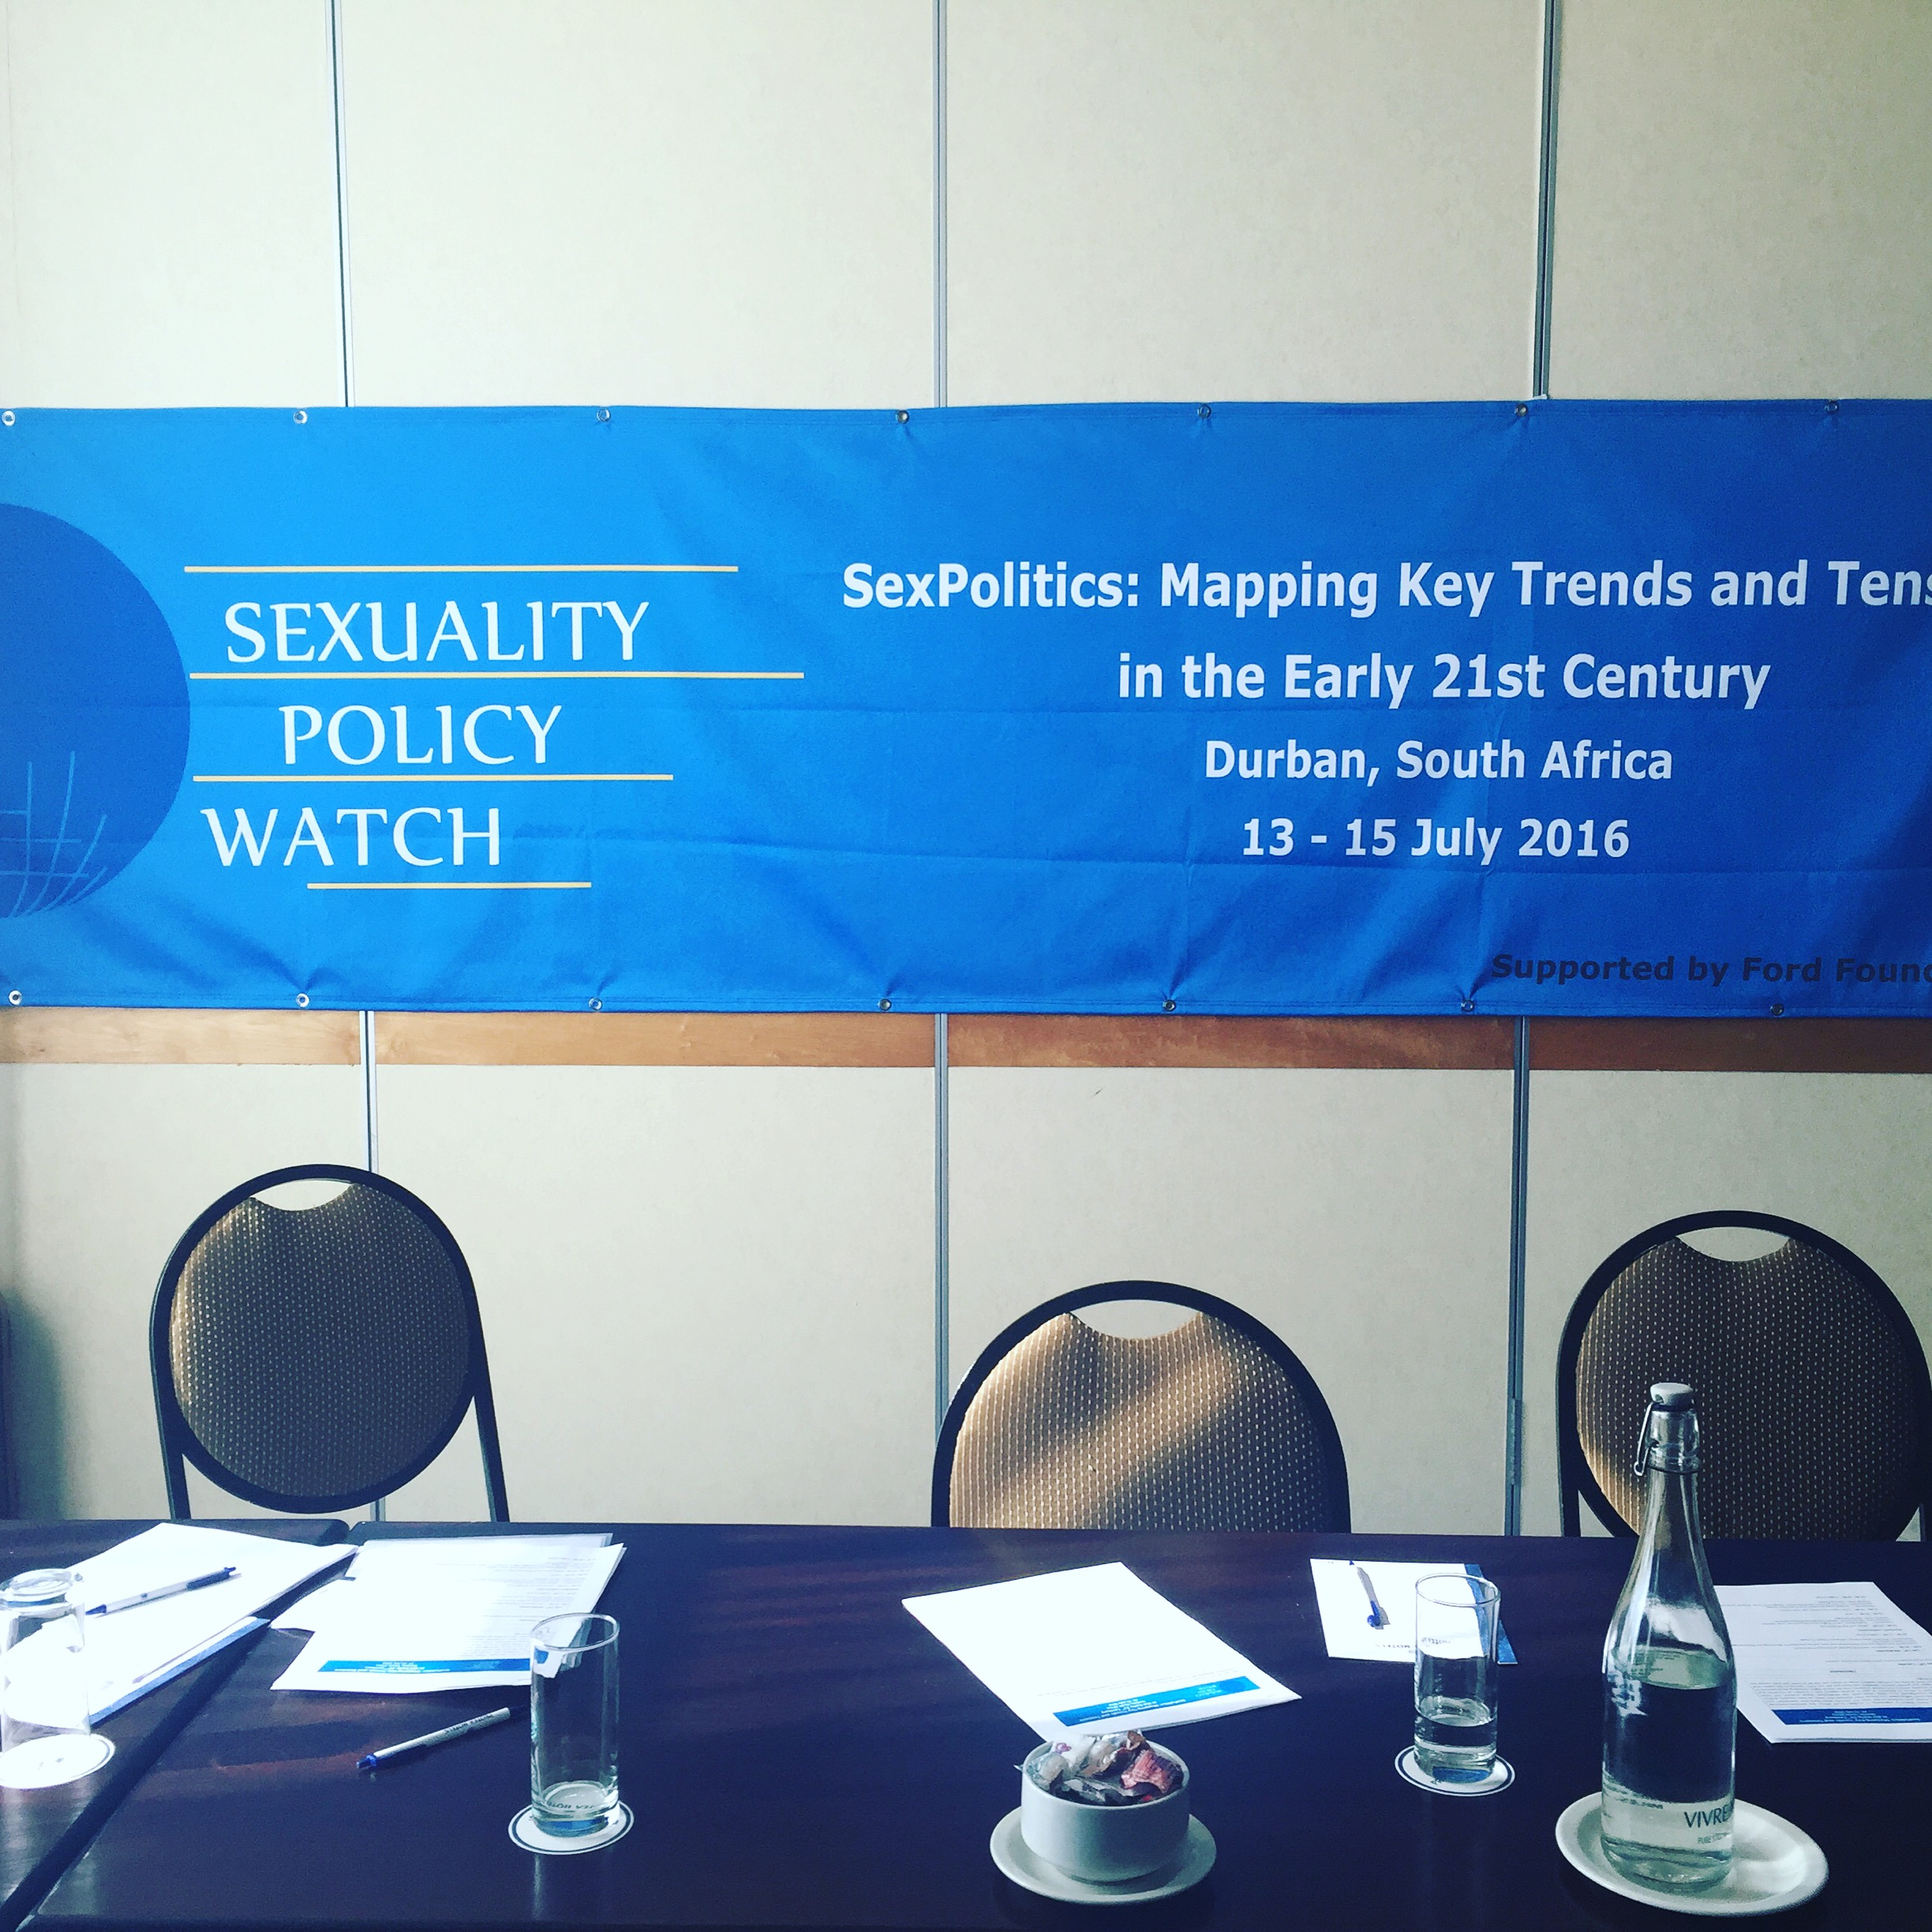 Sexuality Policy Watch